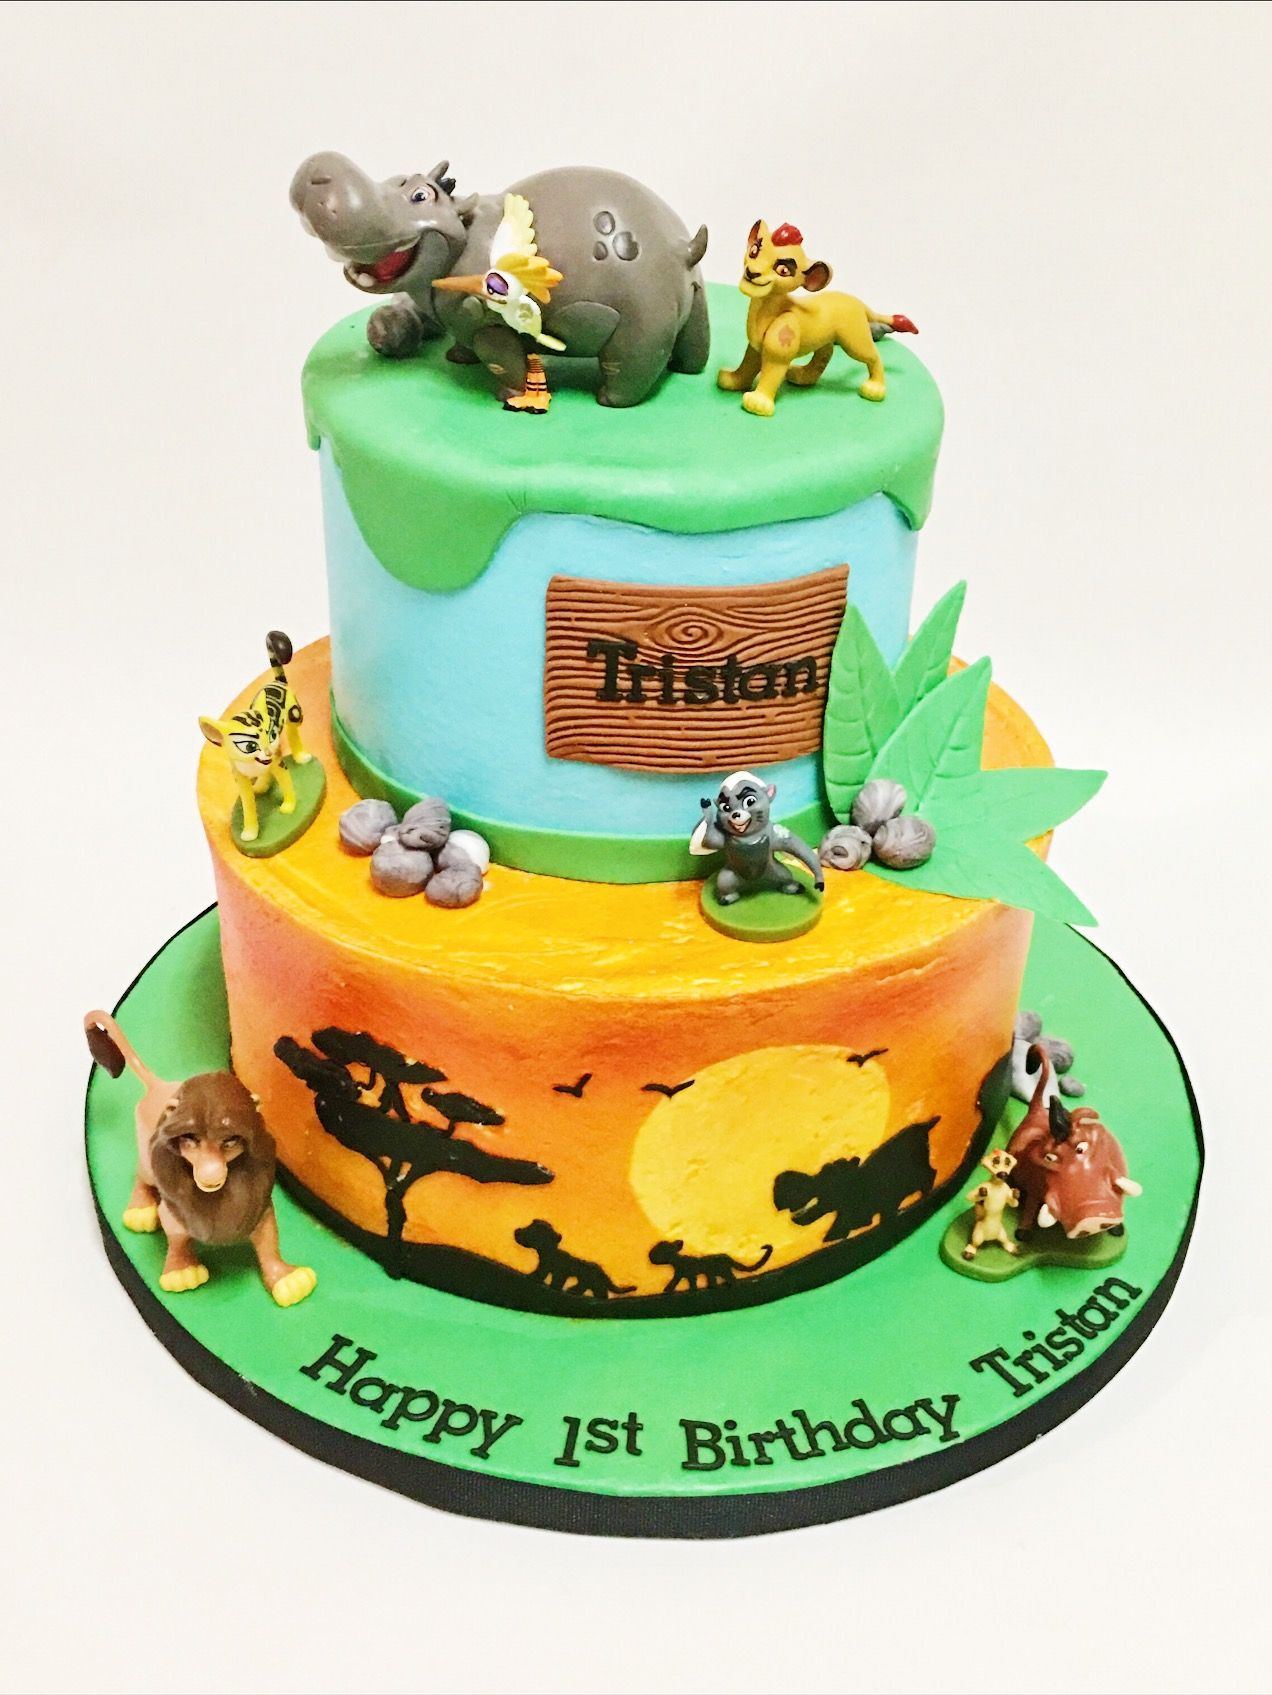 Custom Lion King Birthday Cake by A Little Slice of Heaven Bakery in